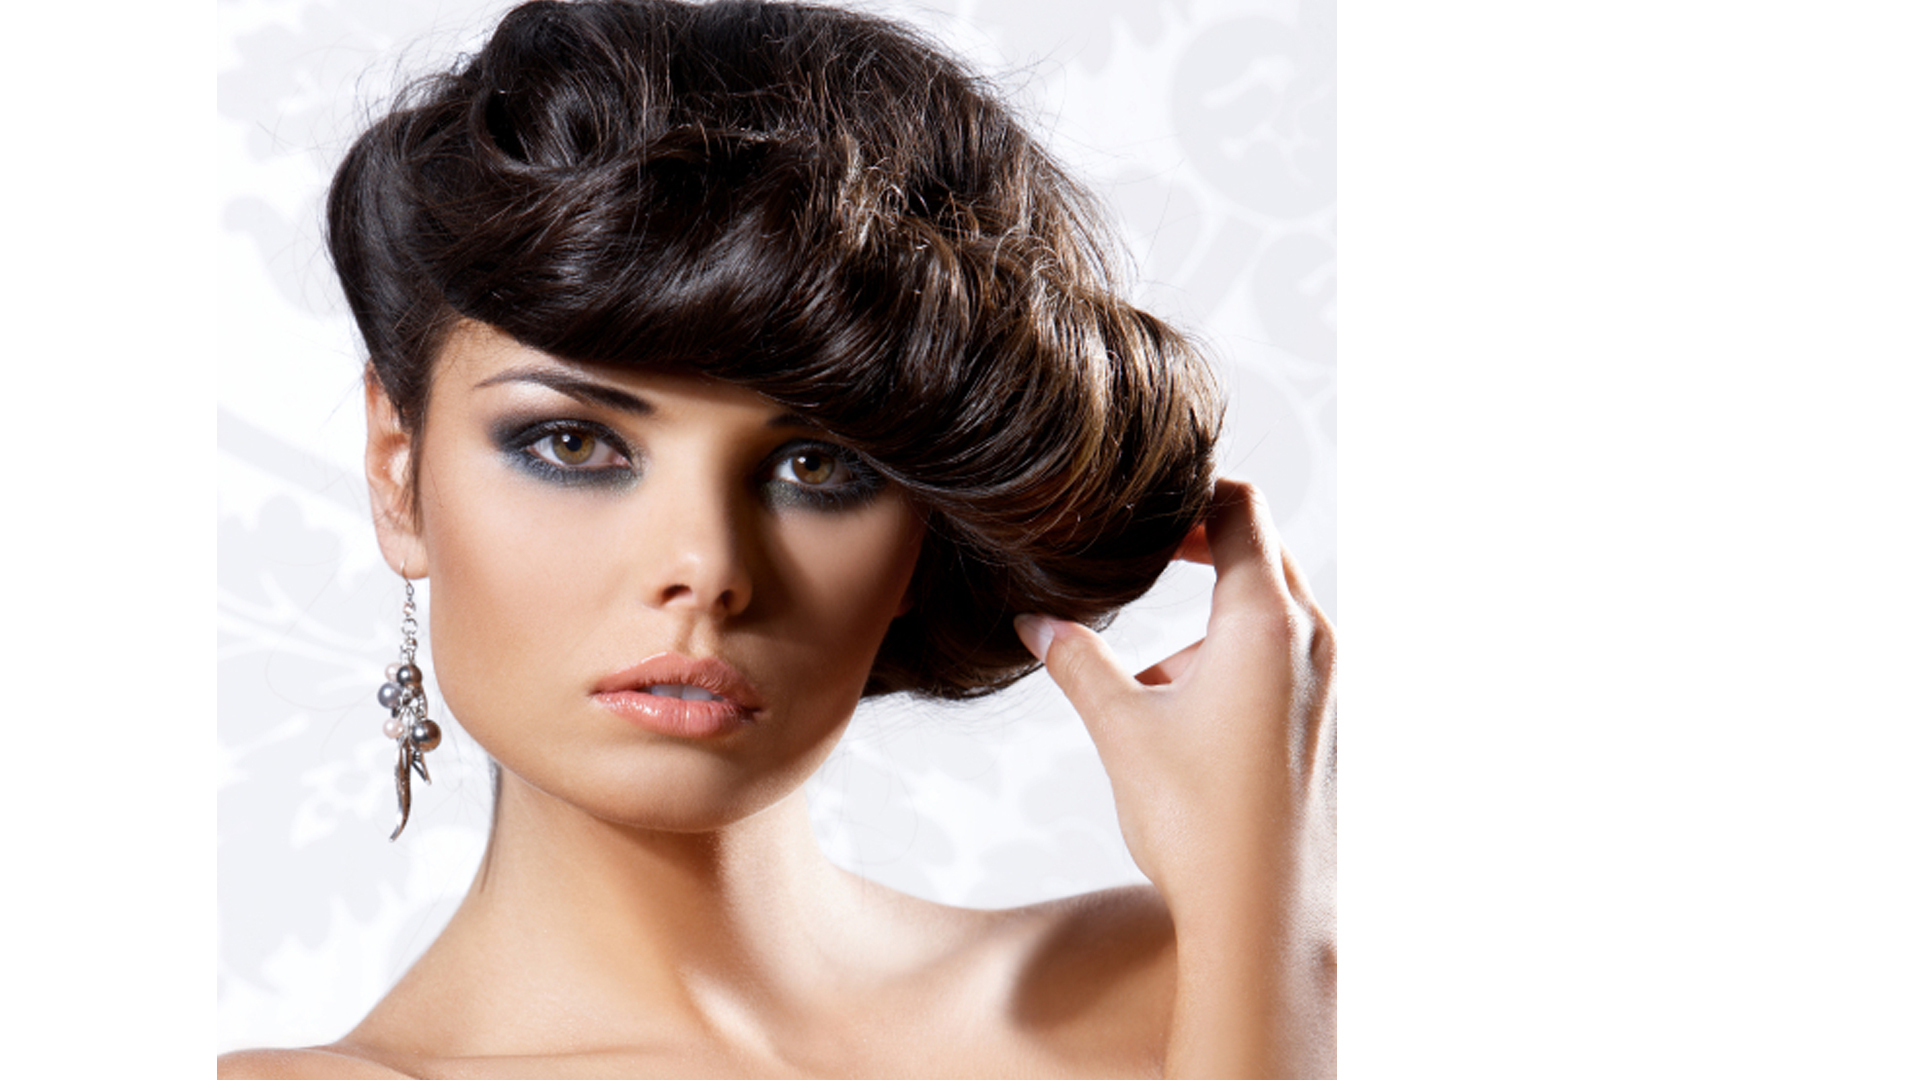 Stylish Hair Salon New Zealand Pictures To Pin On Pinterest Pinsdaddy